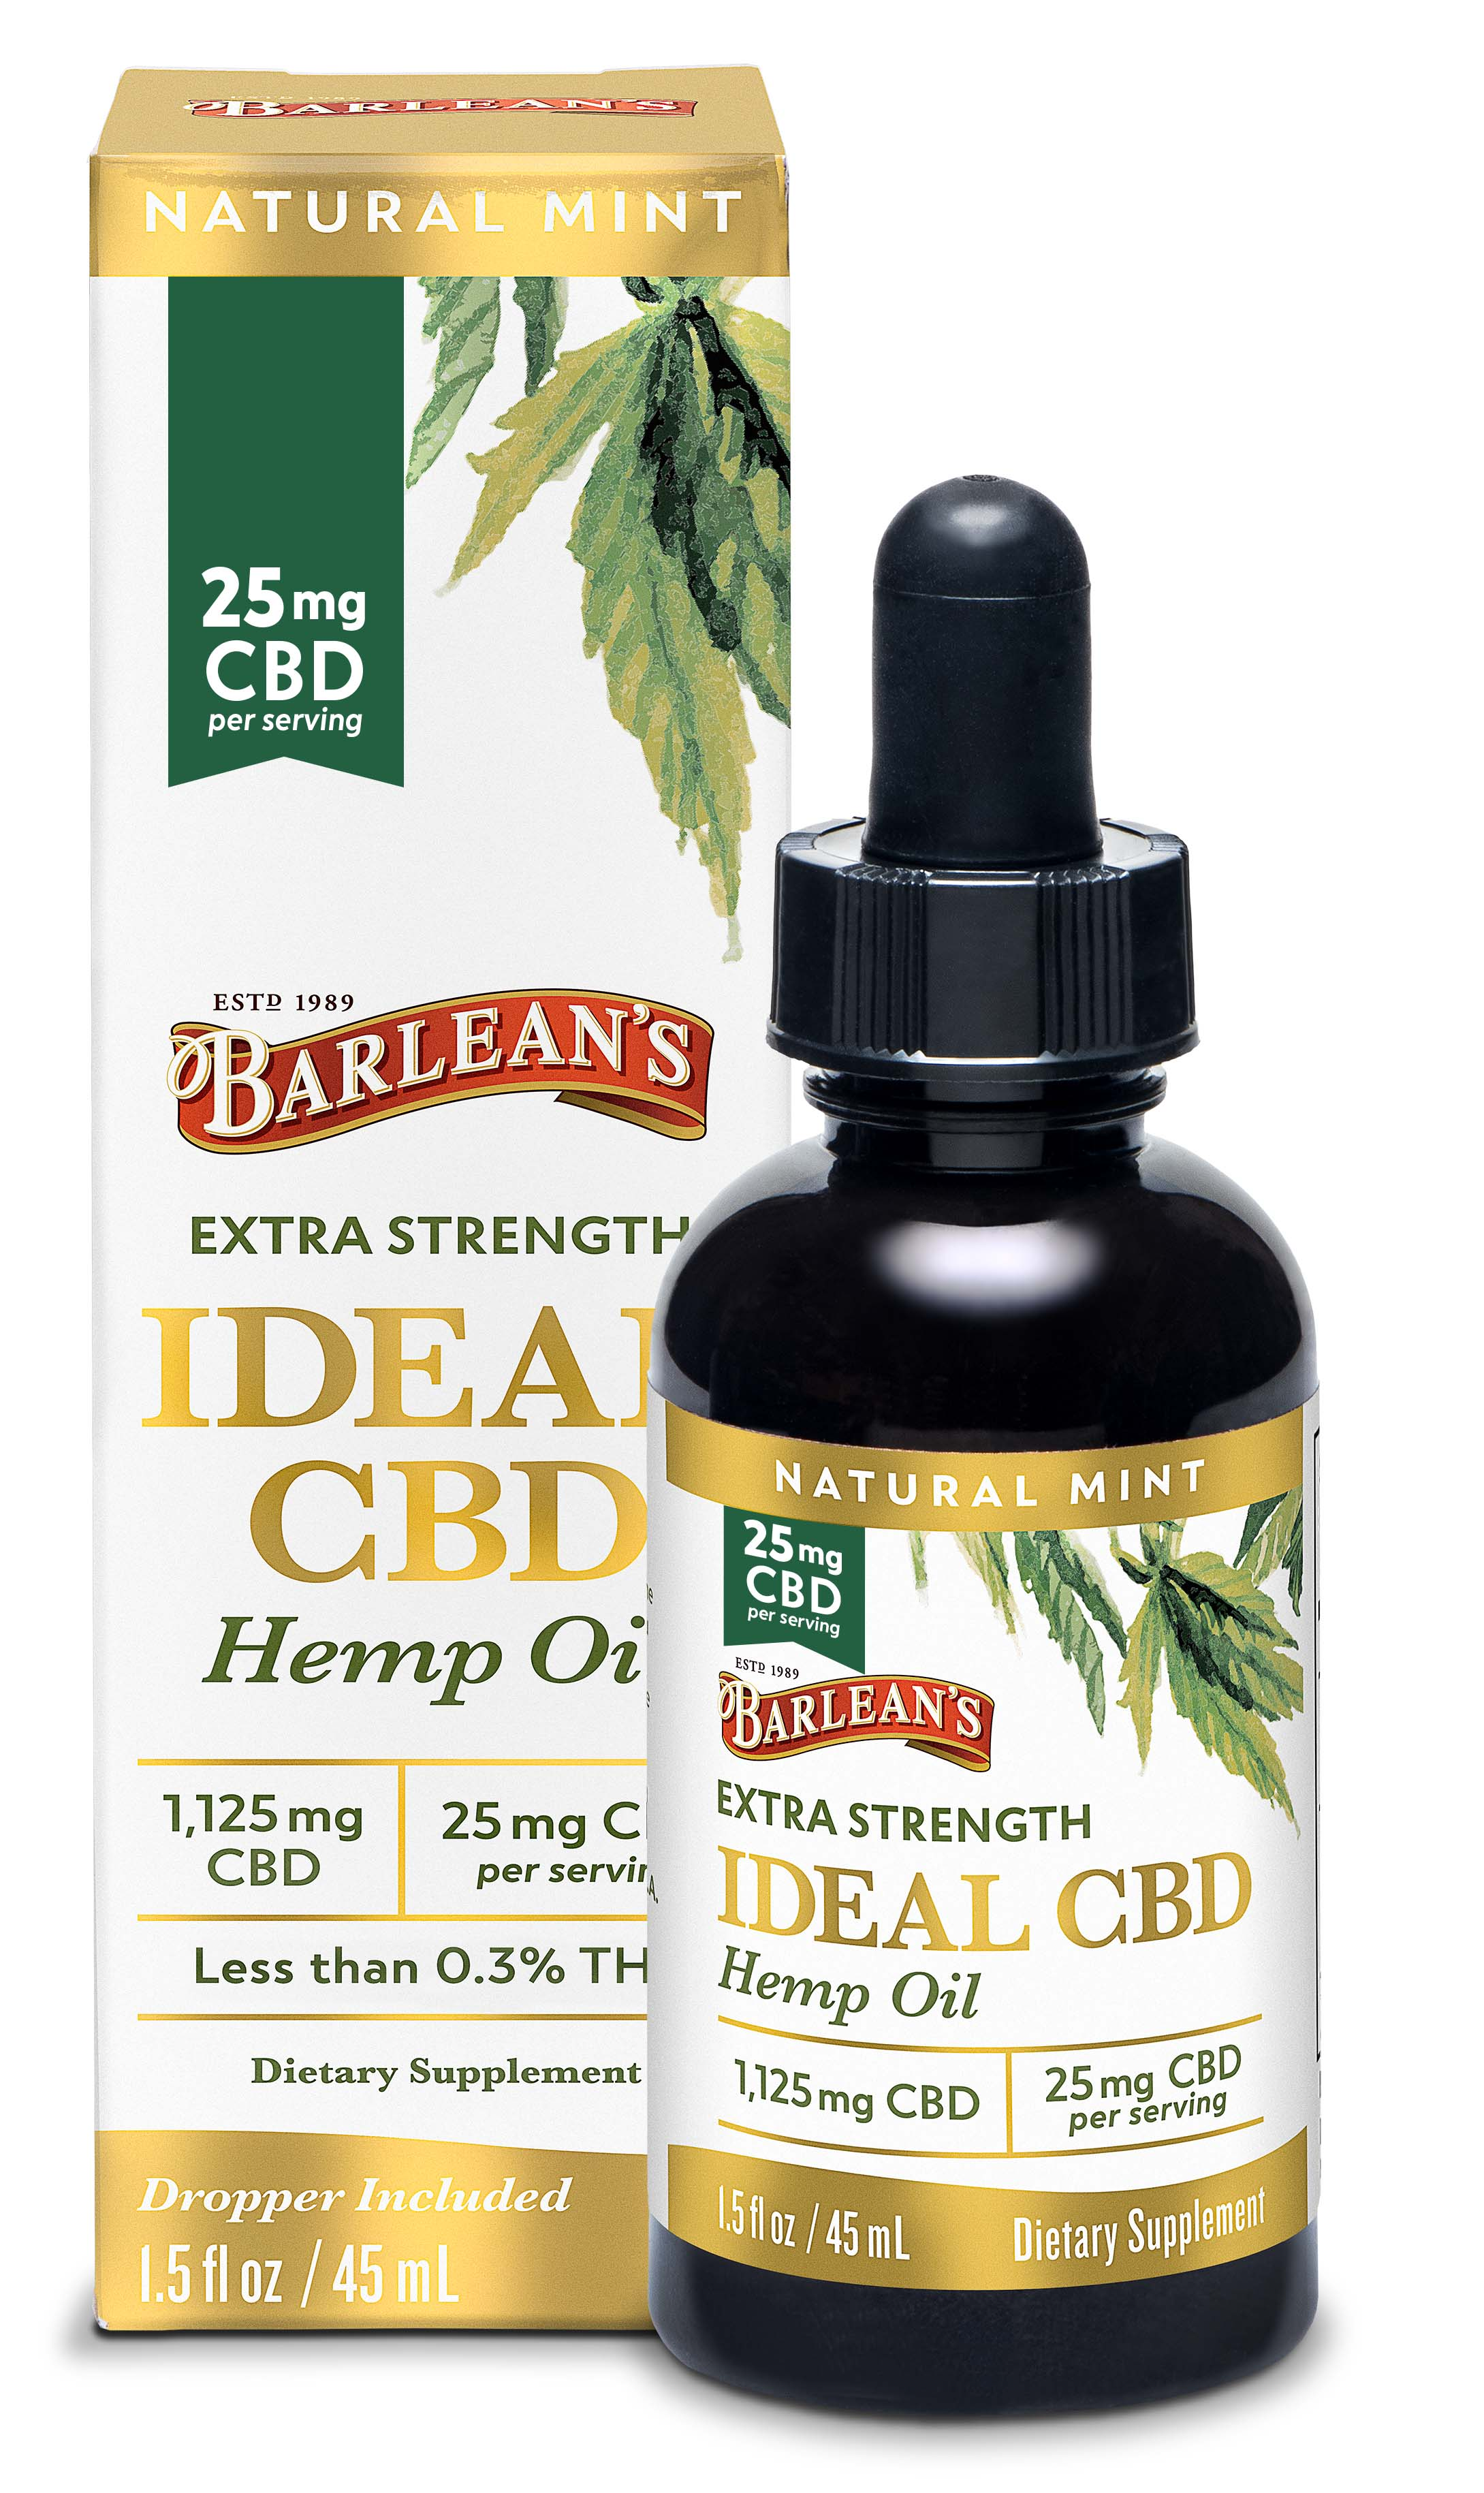 How To Make Hemp Cbd Oil At Home